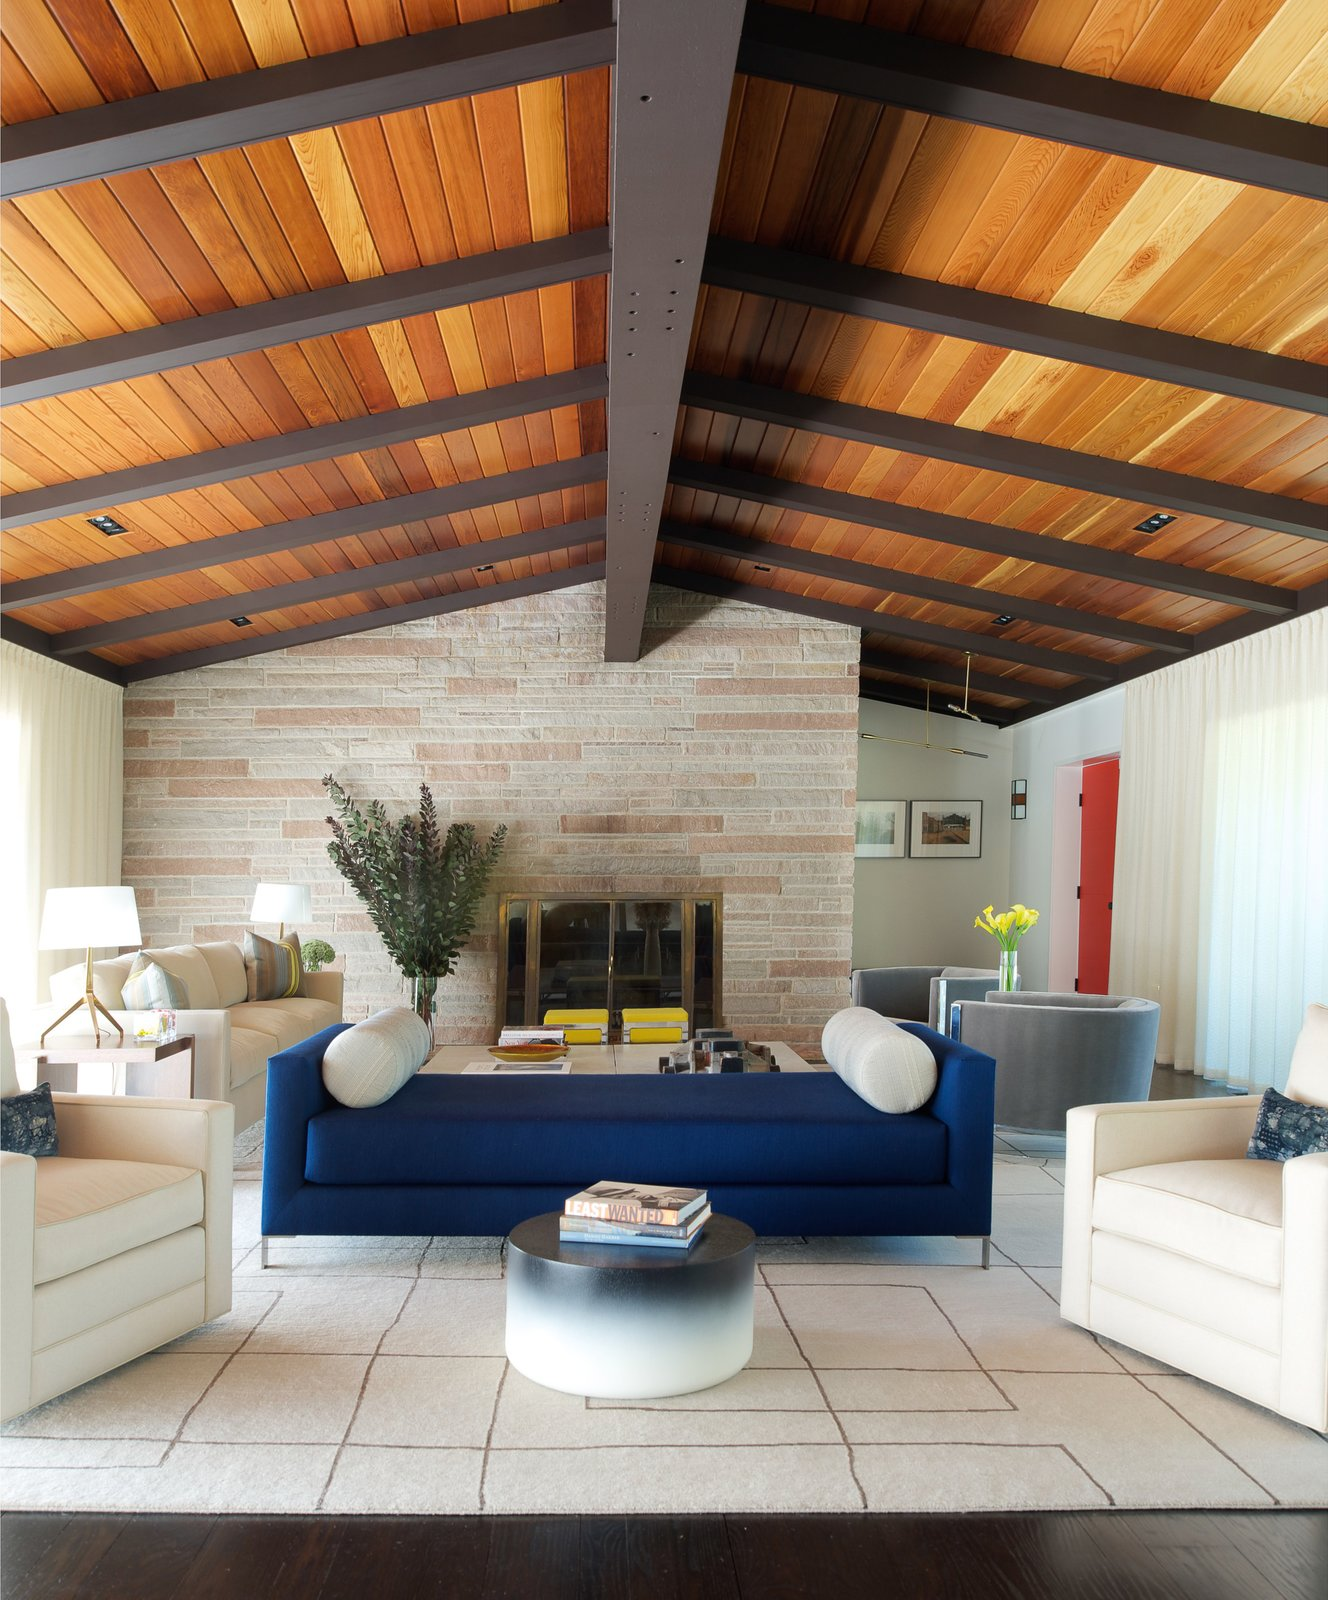 The renovated home maintains its original layout. To refresh the dated appearance of the space, Stonefox added cedar tongue-and-groove panels to the ceiling and refinished the floors. The living room rug is from Creative Matters, the WL Daybed is from Niedermaier, and the circular coffee table is a Tie and Die model from Holly Hunt. Tagged: Living Room, Sofa, Coffee Tables, Standard Layout Fireplace, and Wood Burning Fireplace.  47+ Midcentury Modern Homes Across America by Luke Hopping from Clean Update for a Midcentury House in Pennsylvania